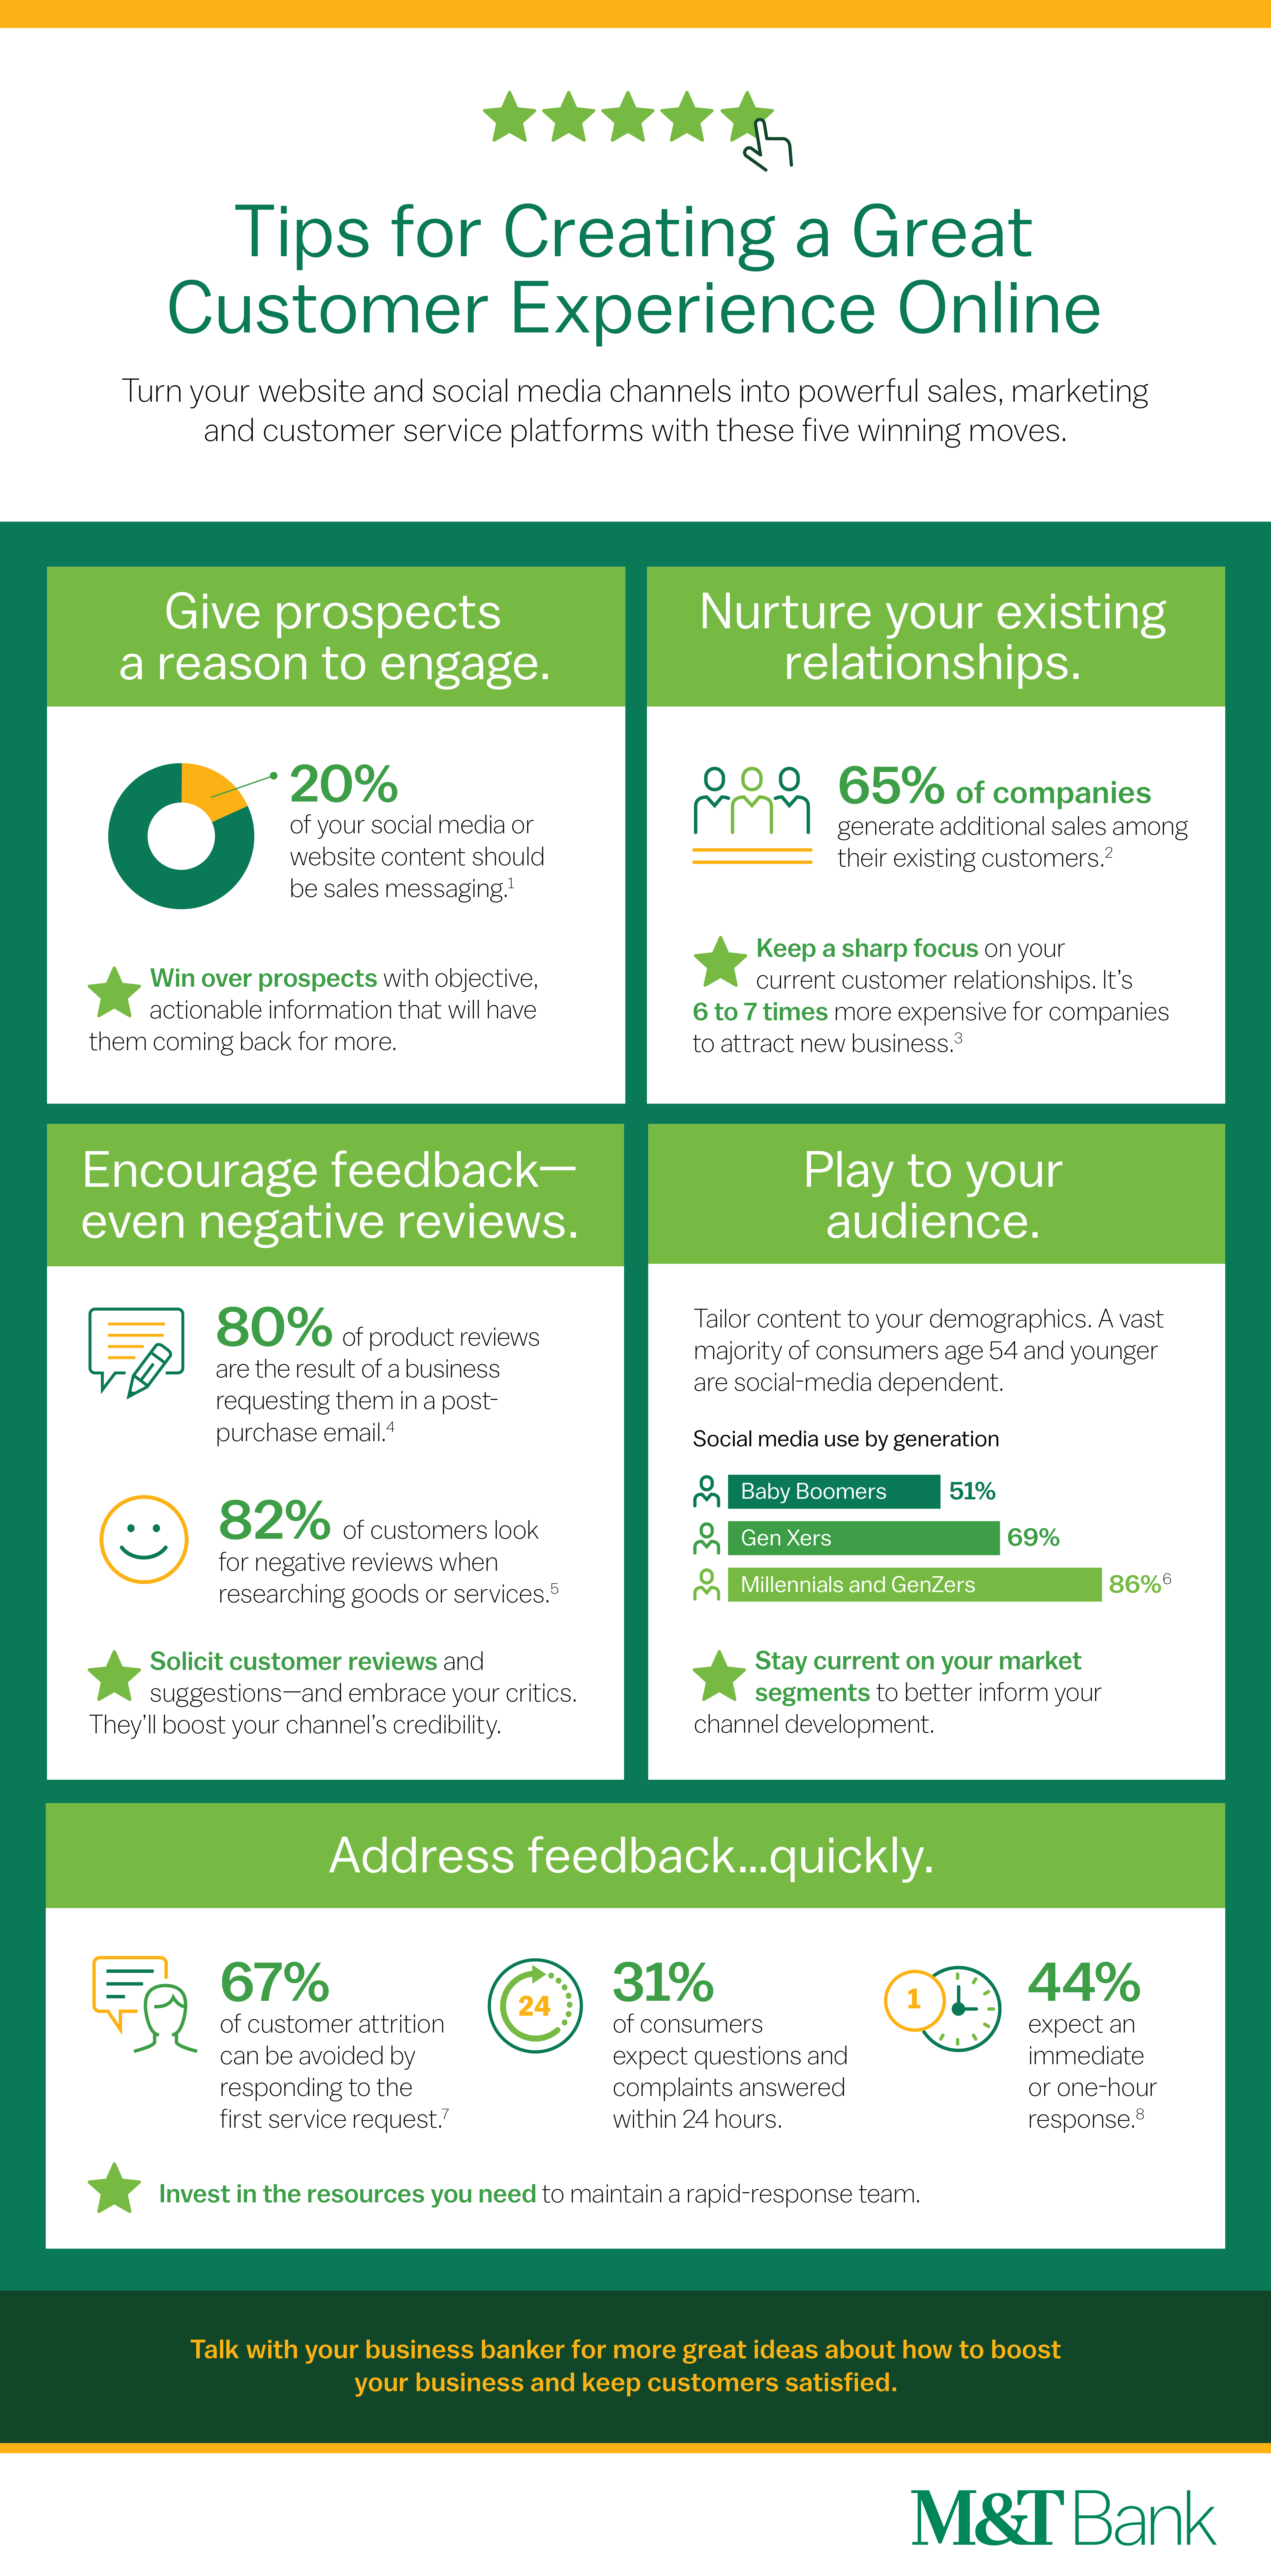 tips-for-creating-great-online-experience-infographic.jpg